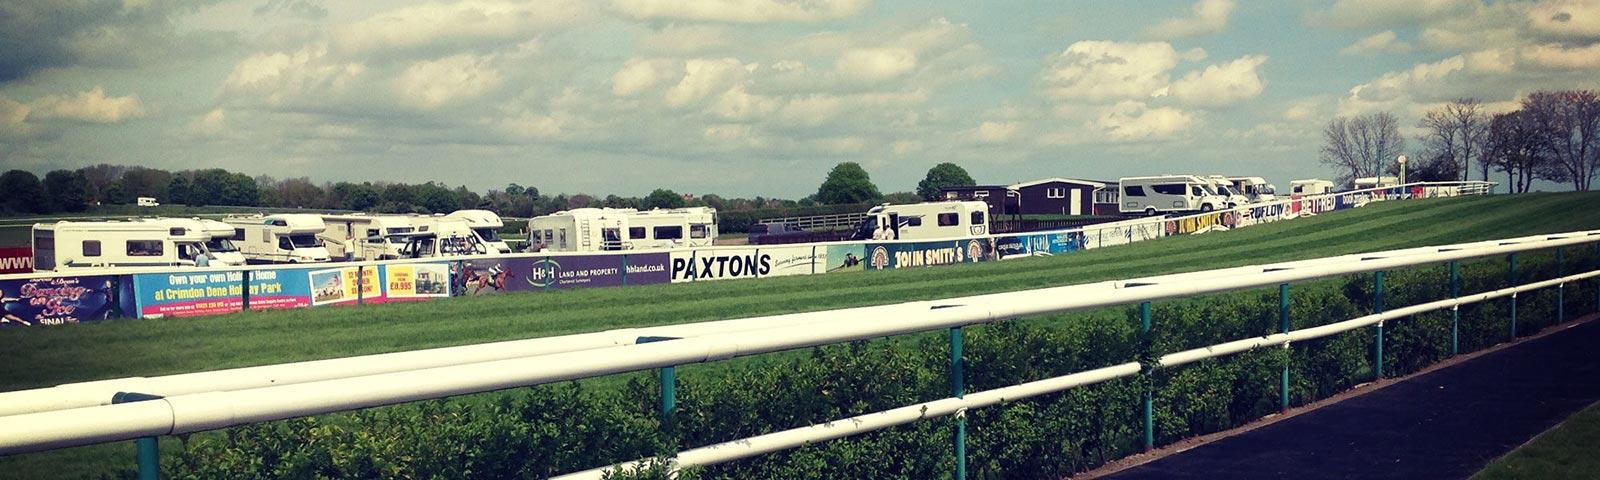 Camping caravans set up in the centre course at Sedgefield Racecourse.